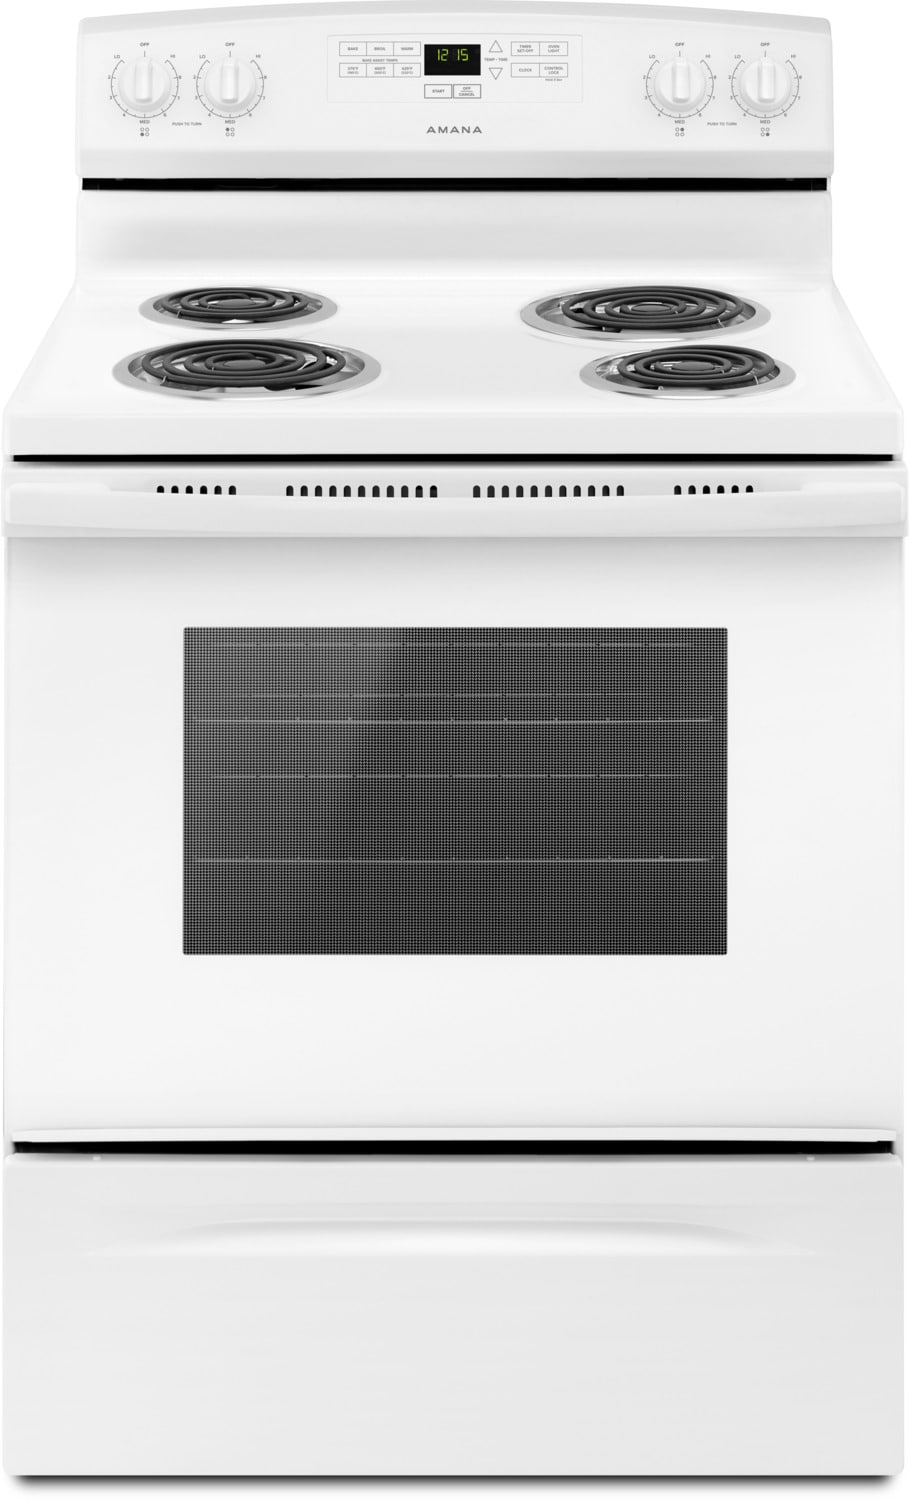 Amana White Freestanding Electric Range (4.8 Cu. Ft.) - YACR4303MFW